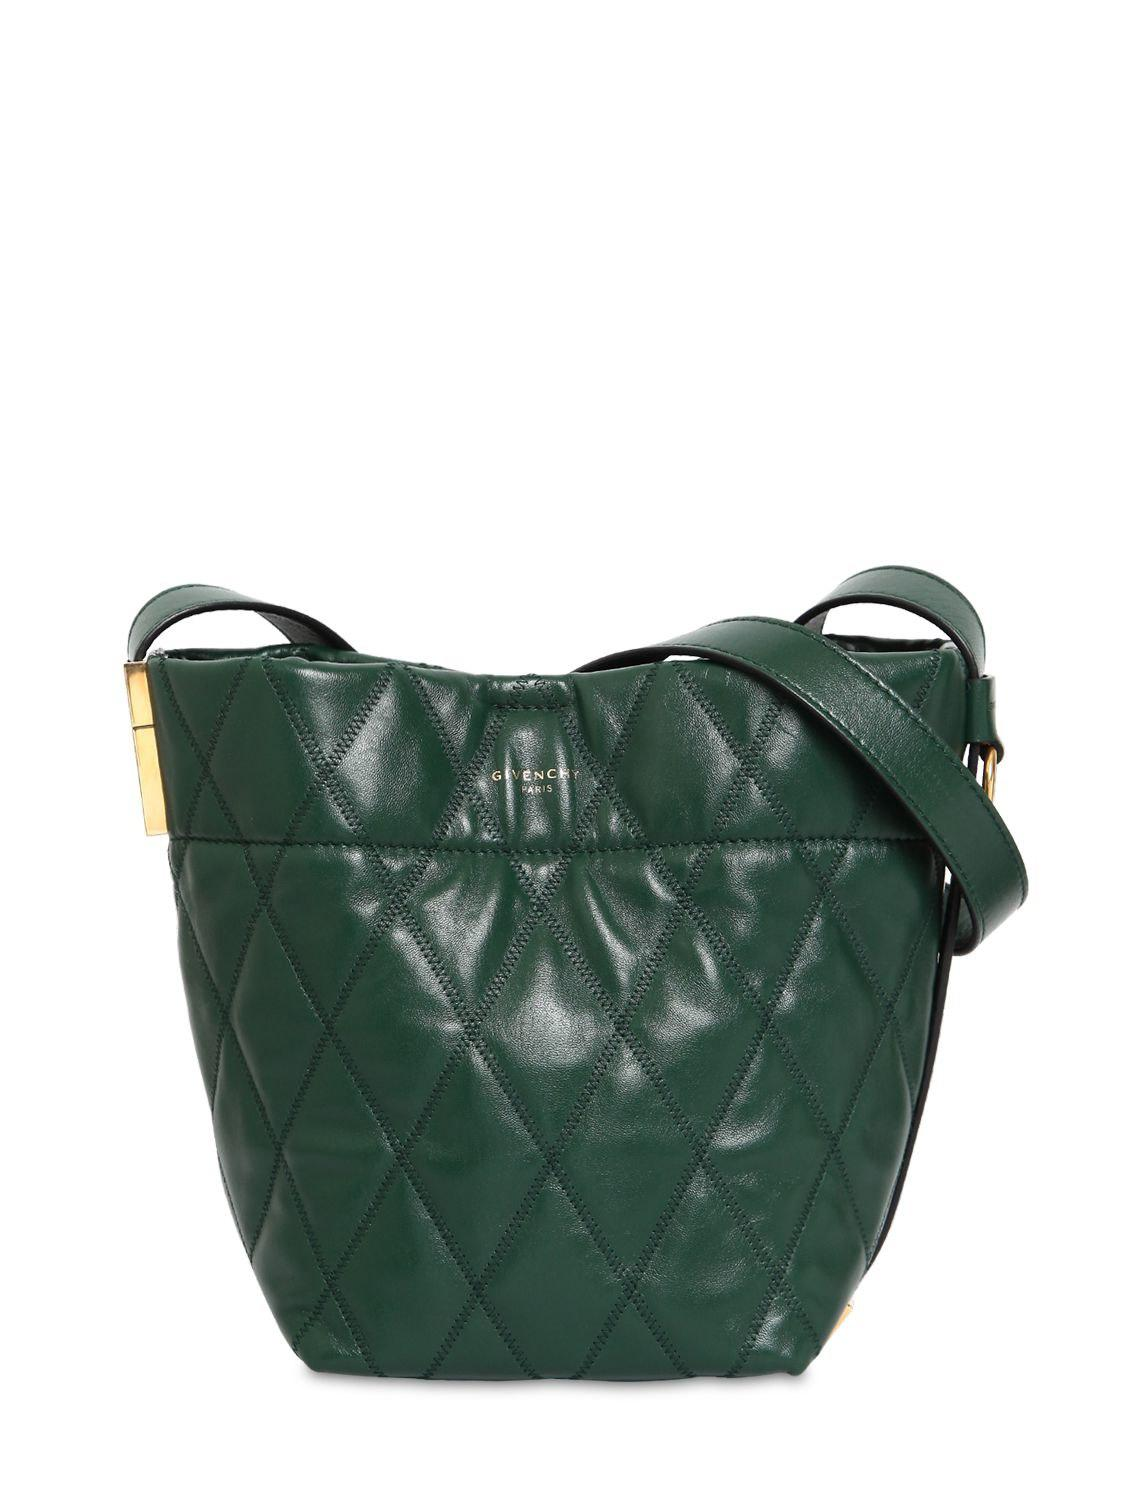 cbbe0ac4abbf Lyst - Givenchy Mini Gv Quilted Leather Bucket Bag in Green